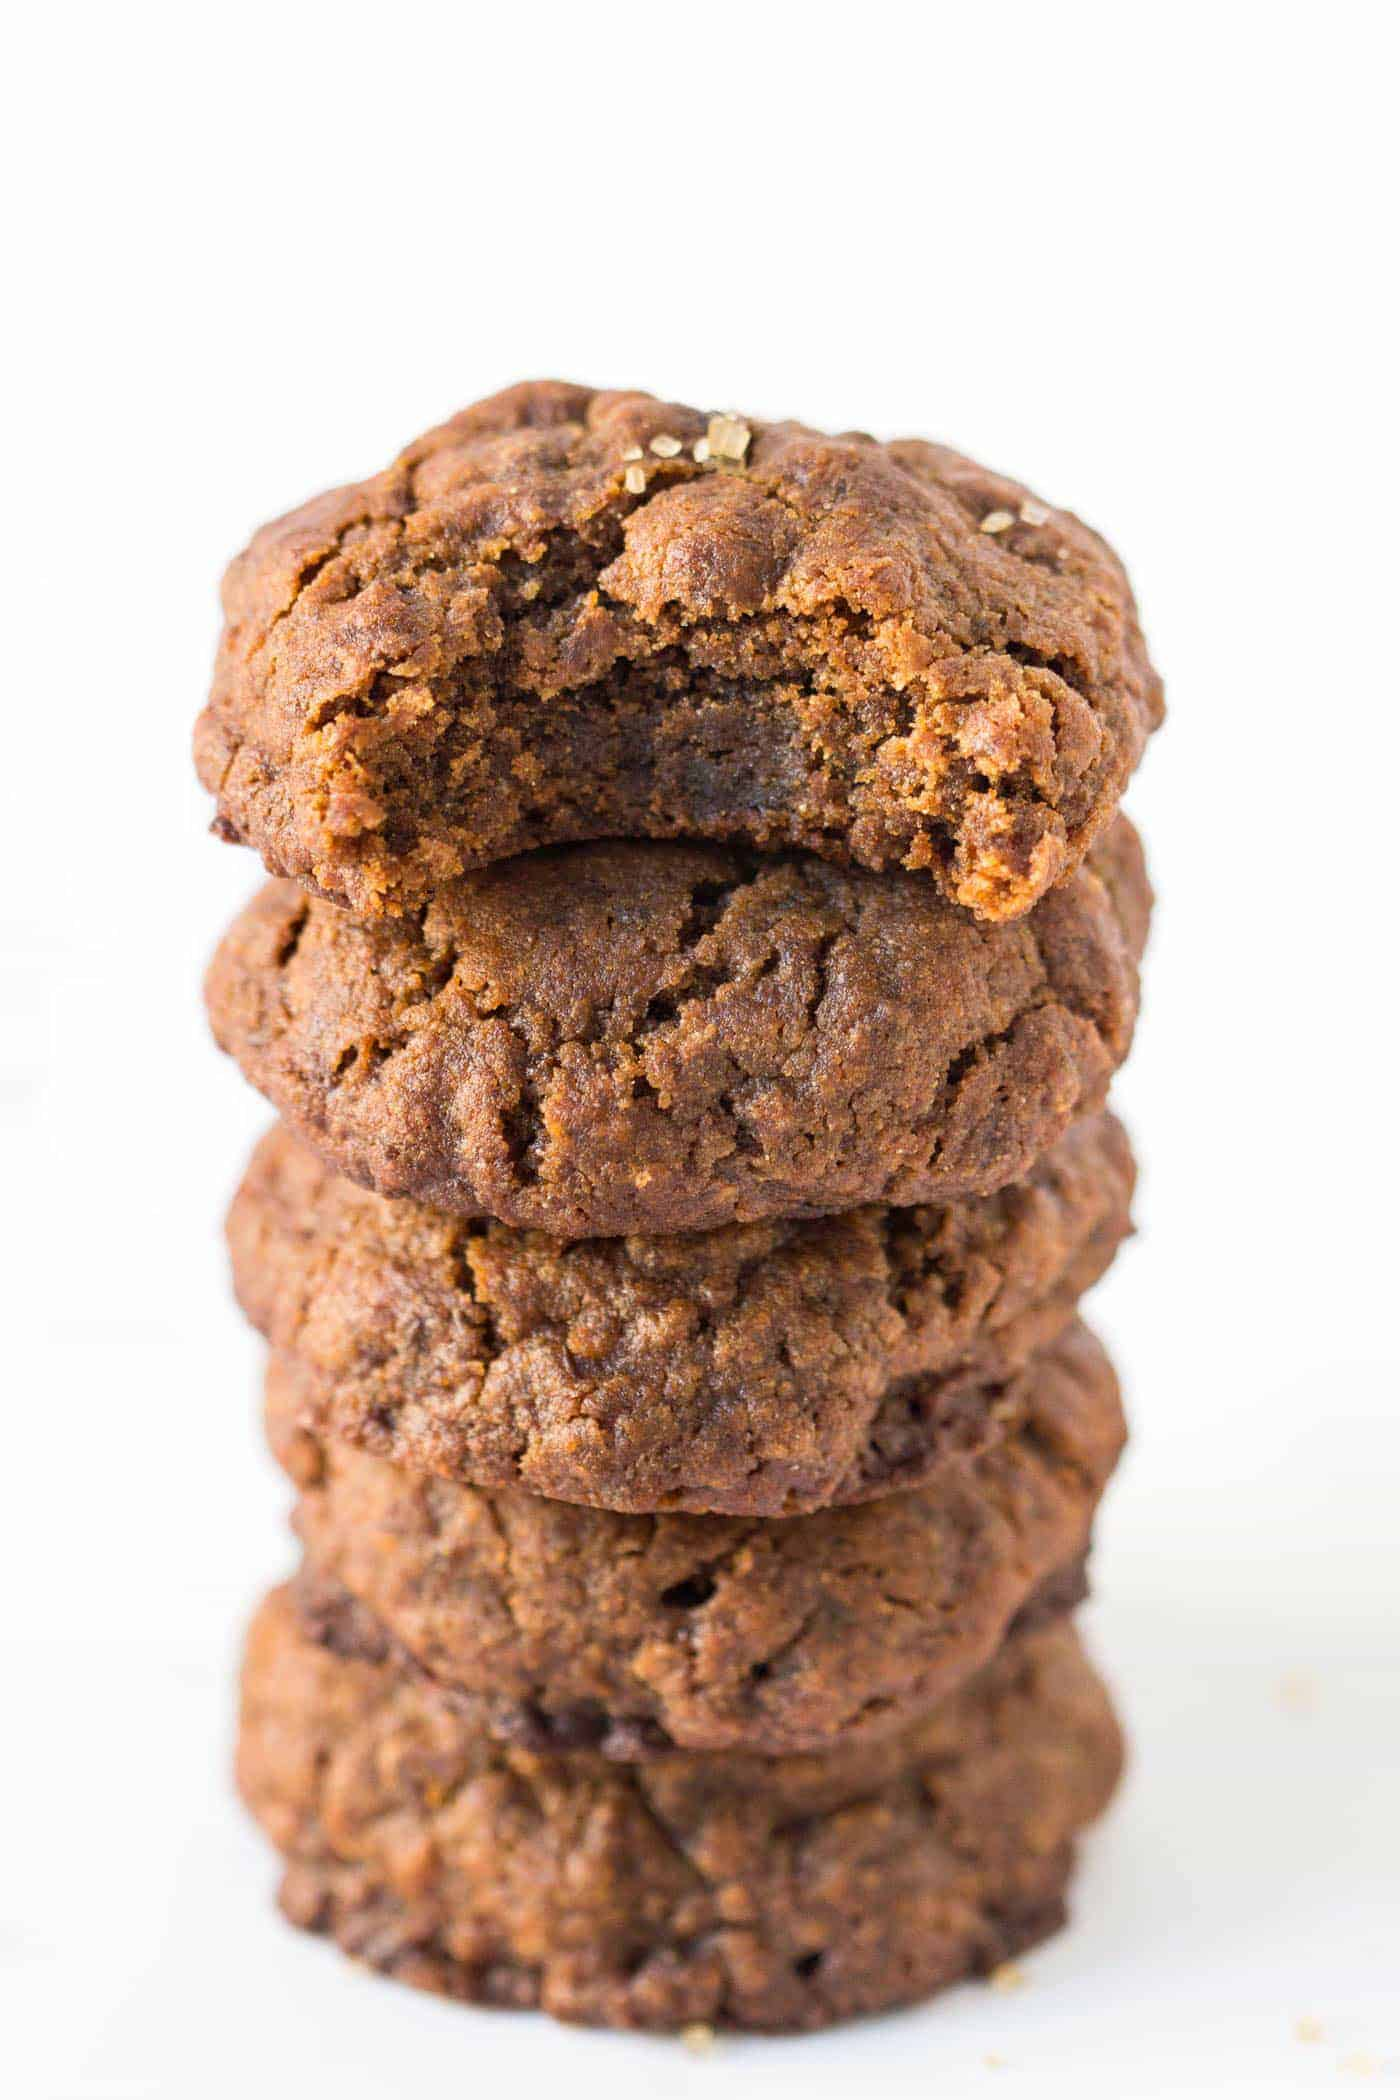 Next holiday cookie swap I'm definitely bringing these vegan gingersnaps! They look so easy to make and I love the healthy ingredients!